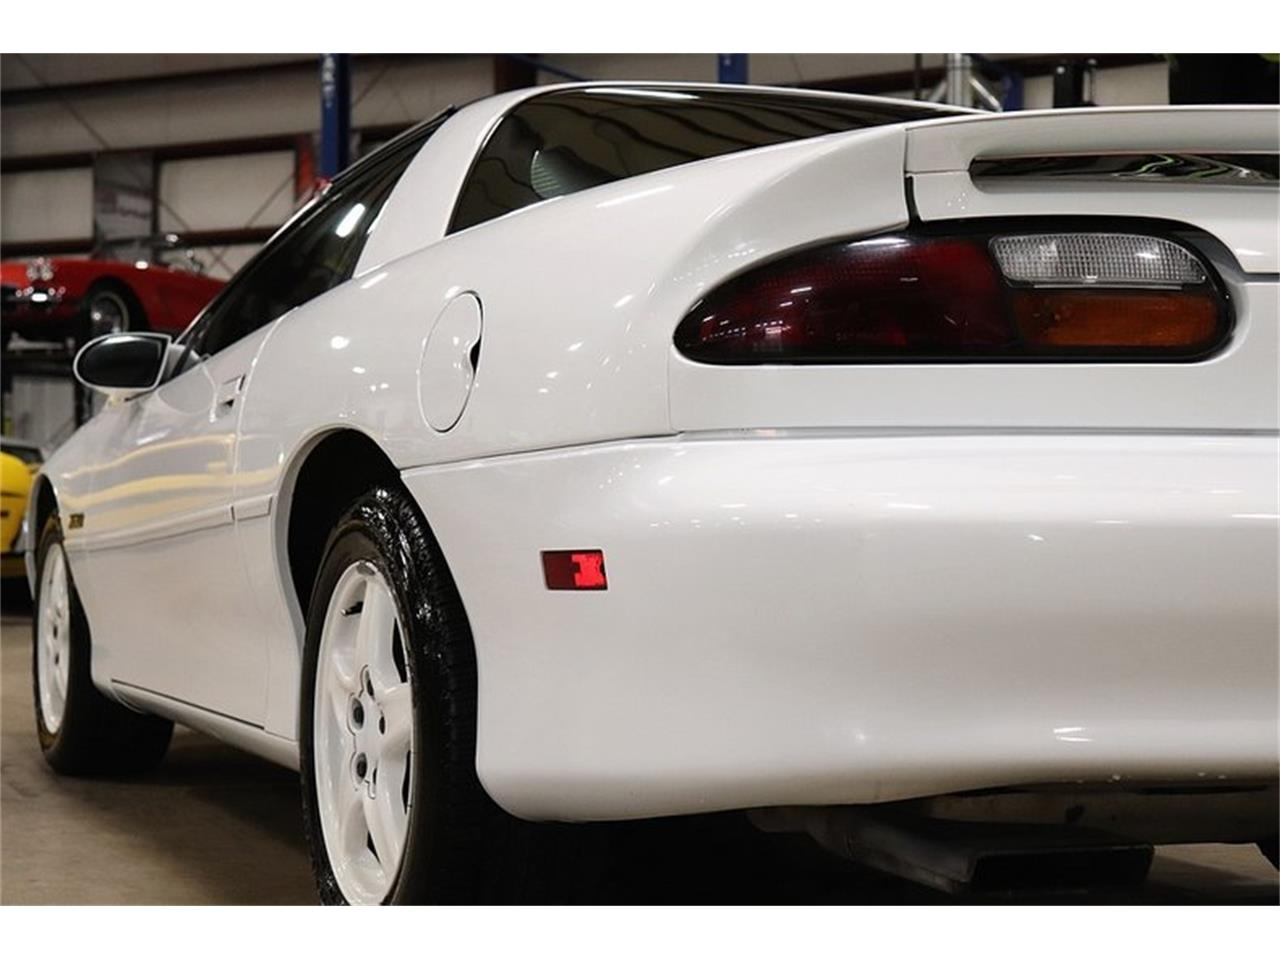 1997 Chevrolet Camaro Z28 for sale in Kentwood, MI – photo 36